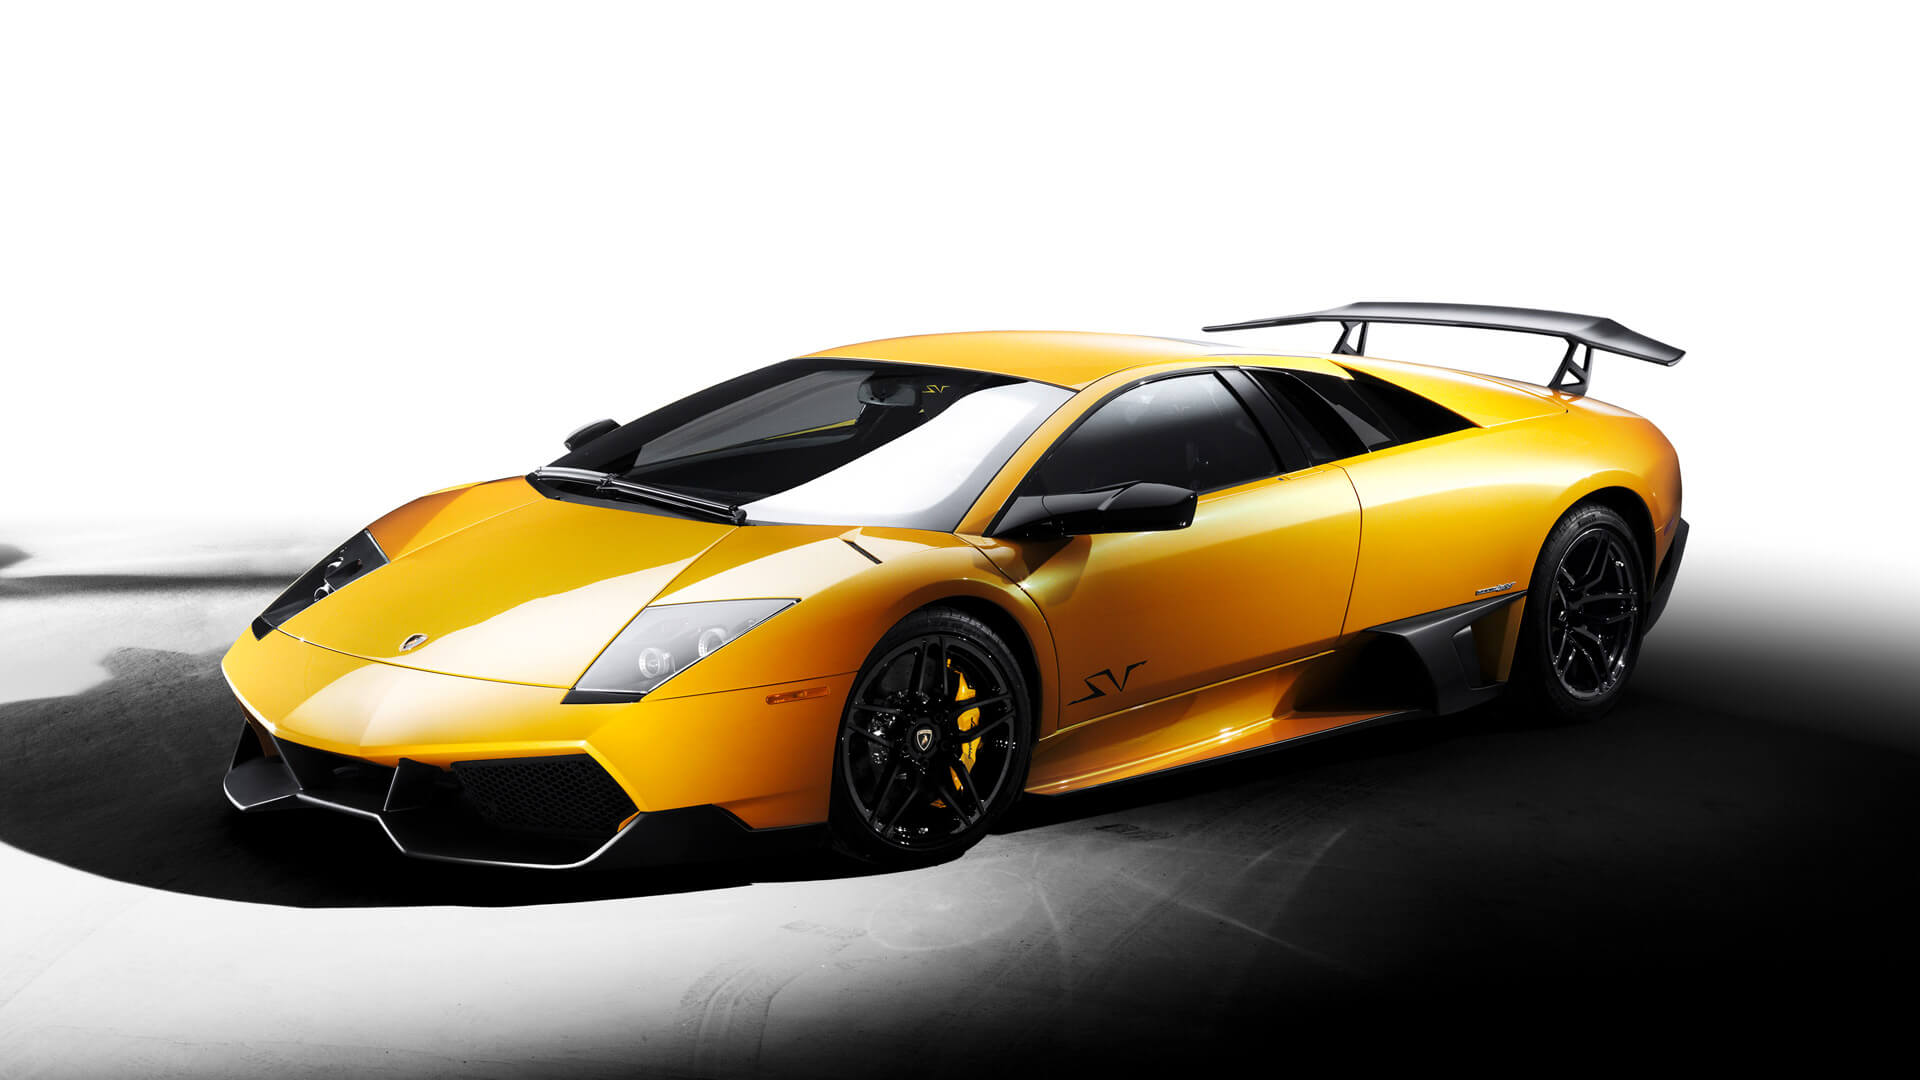 Things you didn't know about Lamborghini; Lamborghini Murcielago SV